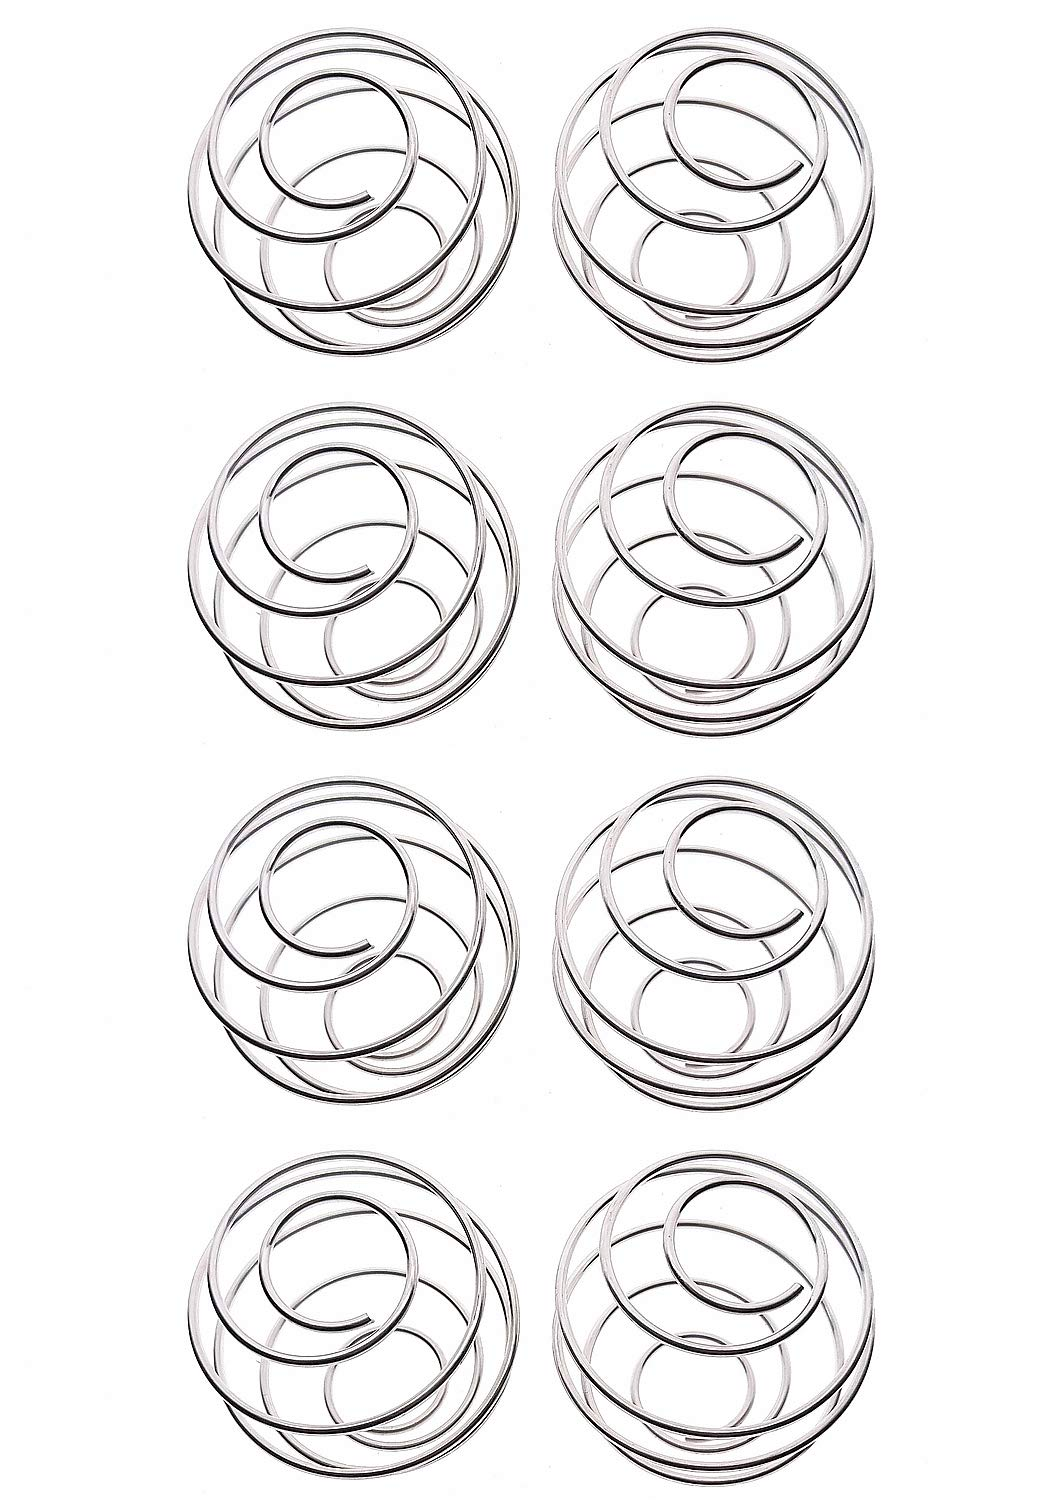 YOFAN 8-Pack Milkshake Protein Blender,Wire Mixer Mixing Ball For Shaker,Drinking Bottle Cup (304 Food Grade Stainless Steel)